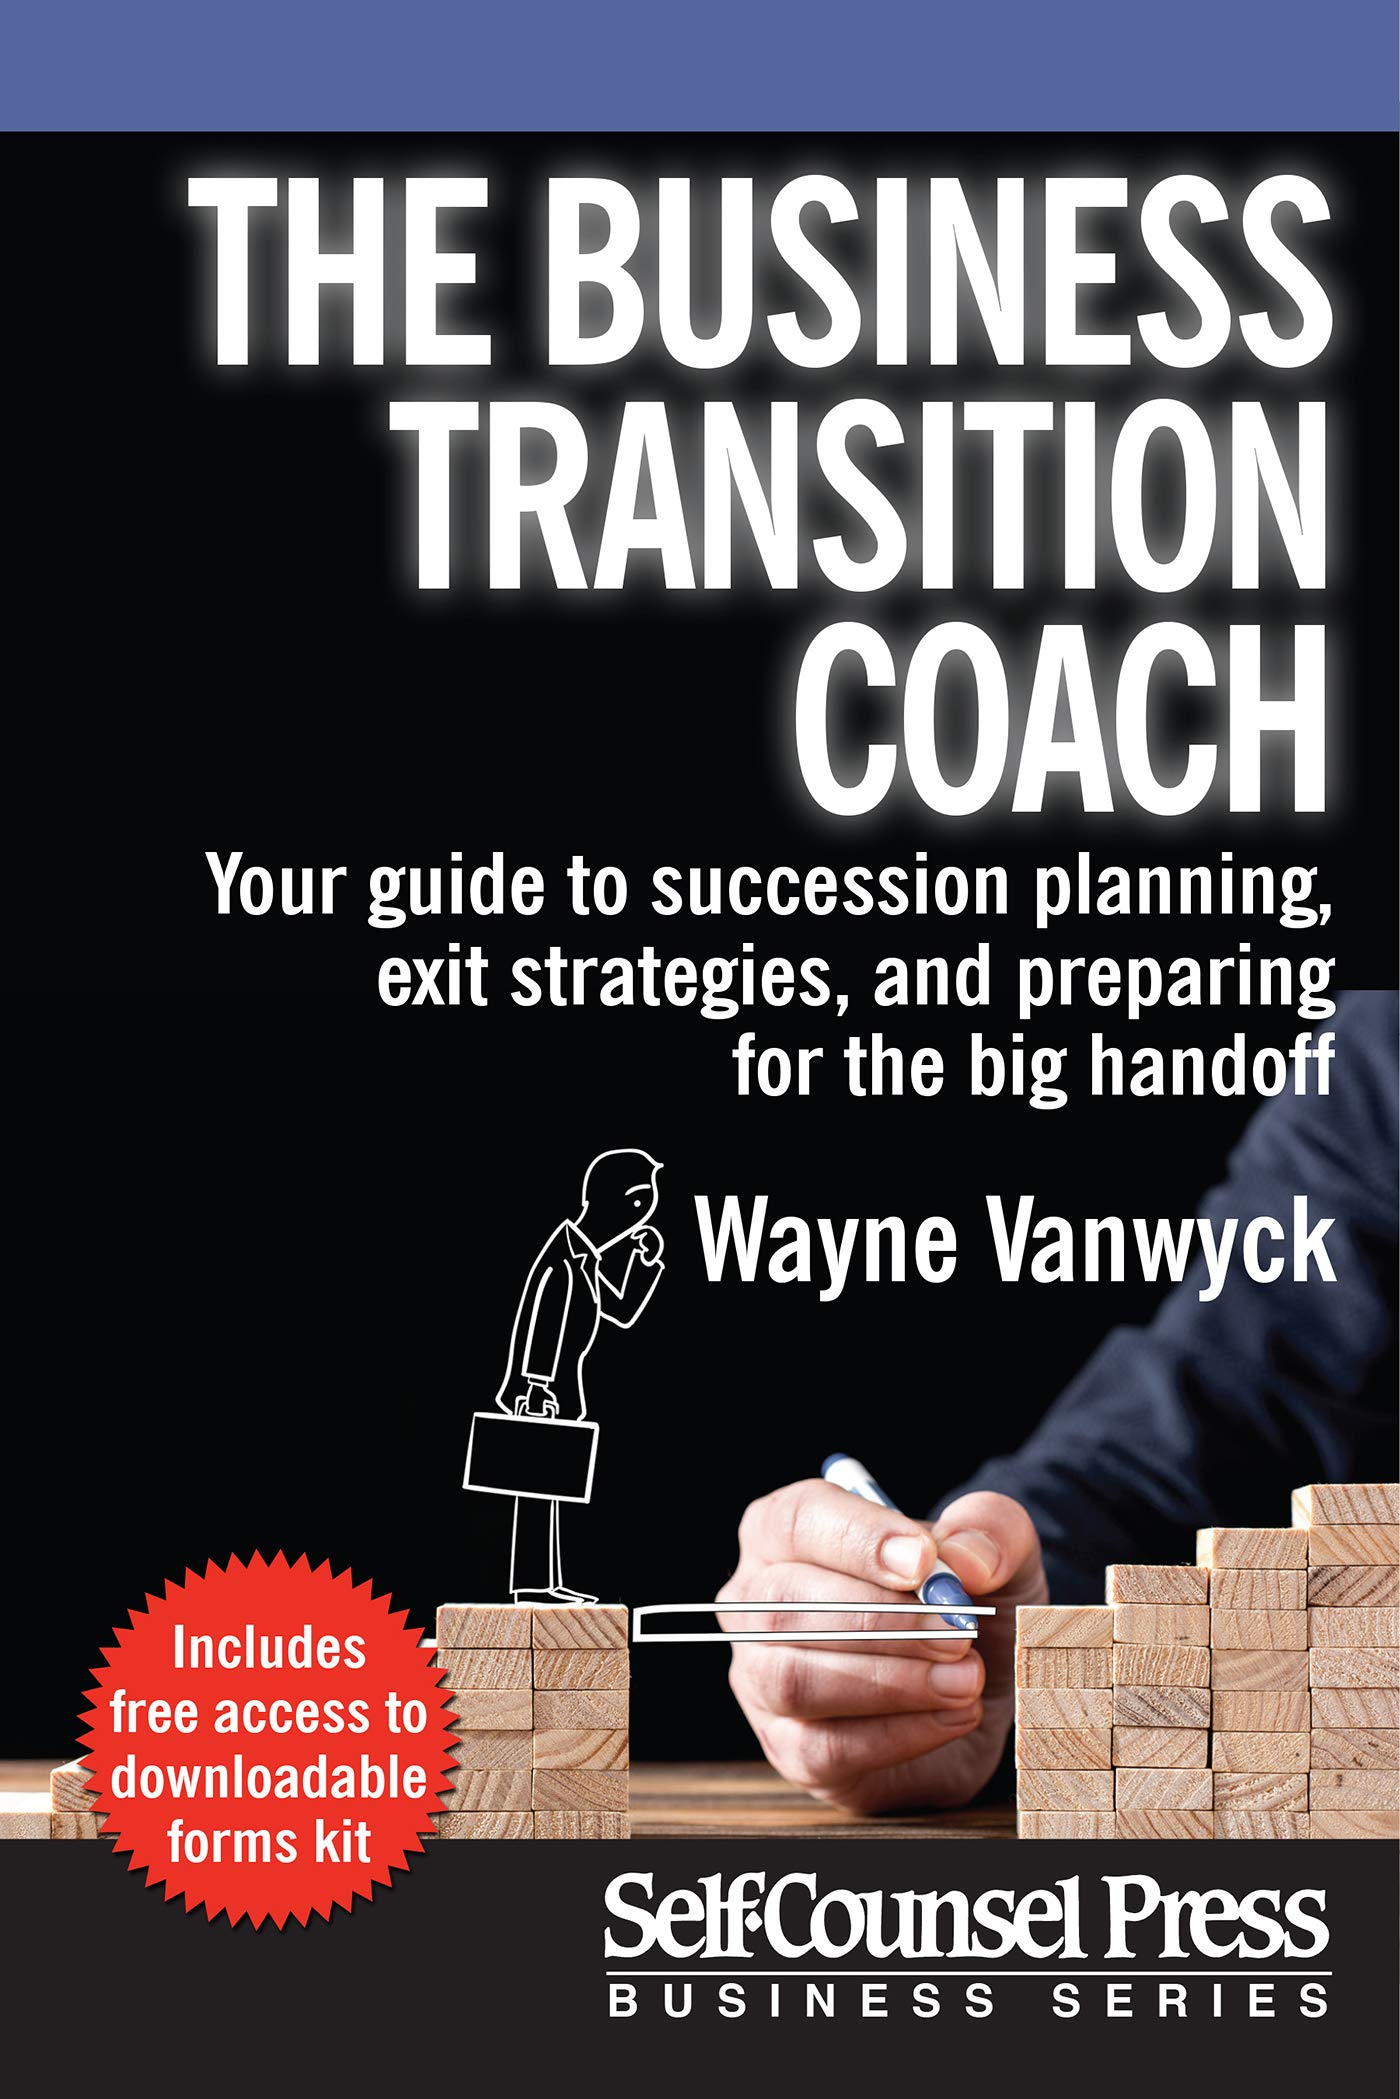 The Business Transition Coach: Your guide to succession planning, exit strategies, and preparing for the big handoff (Business Series)